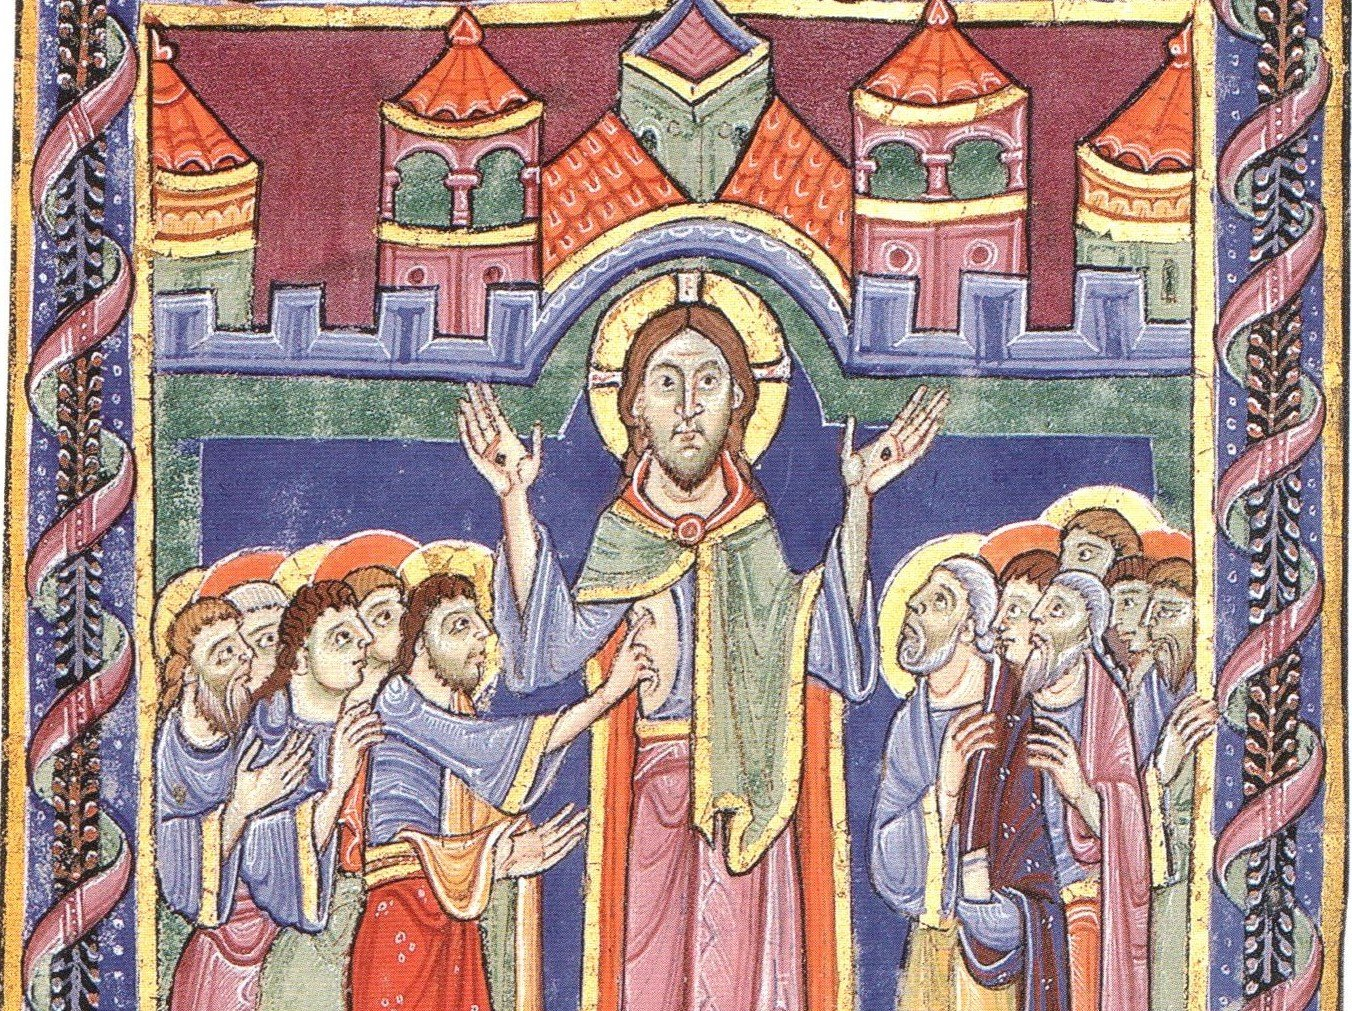 St albans psalter - image from Wikicommons Media